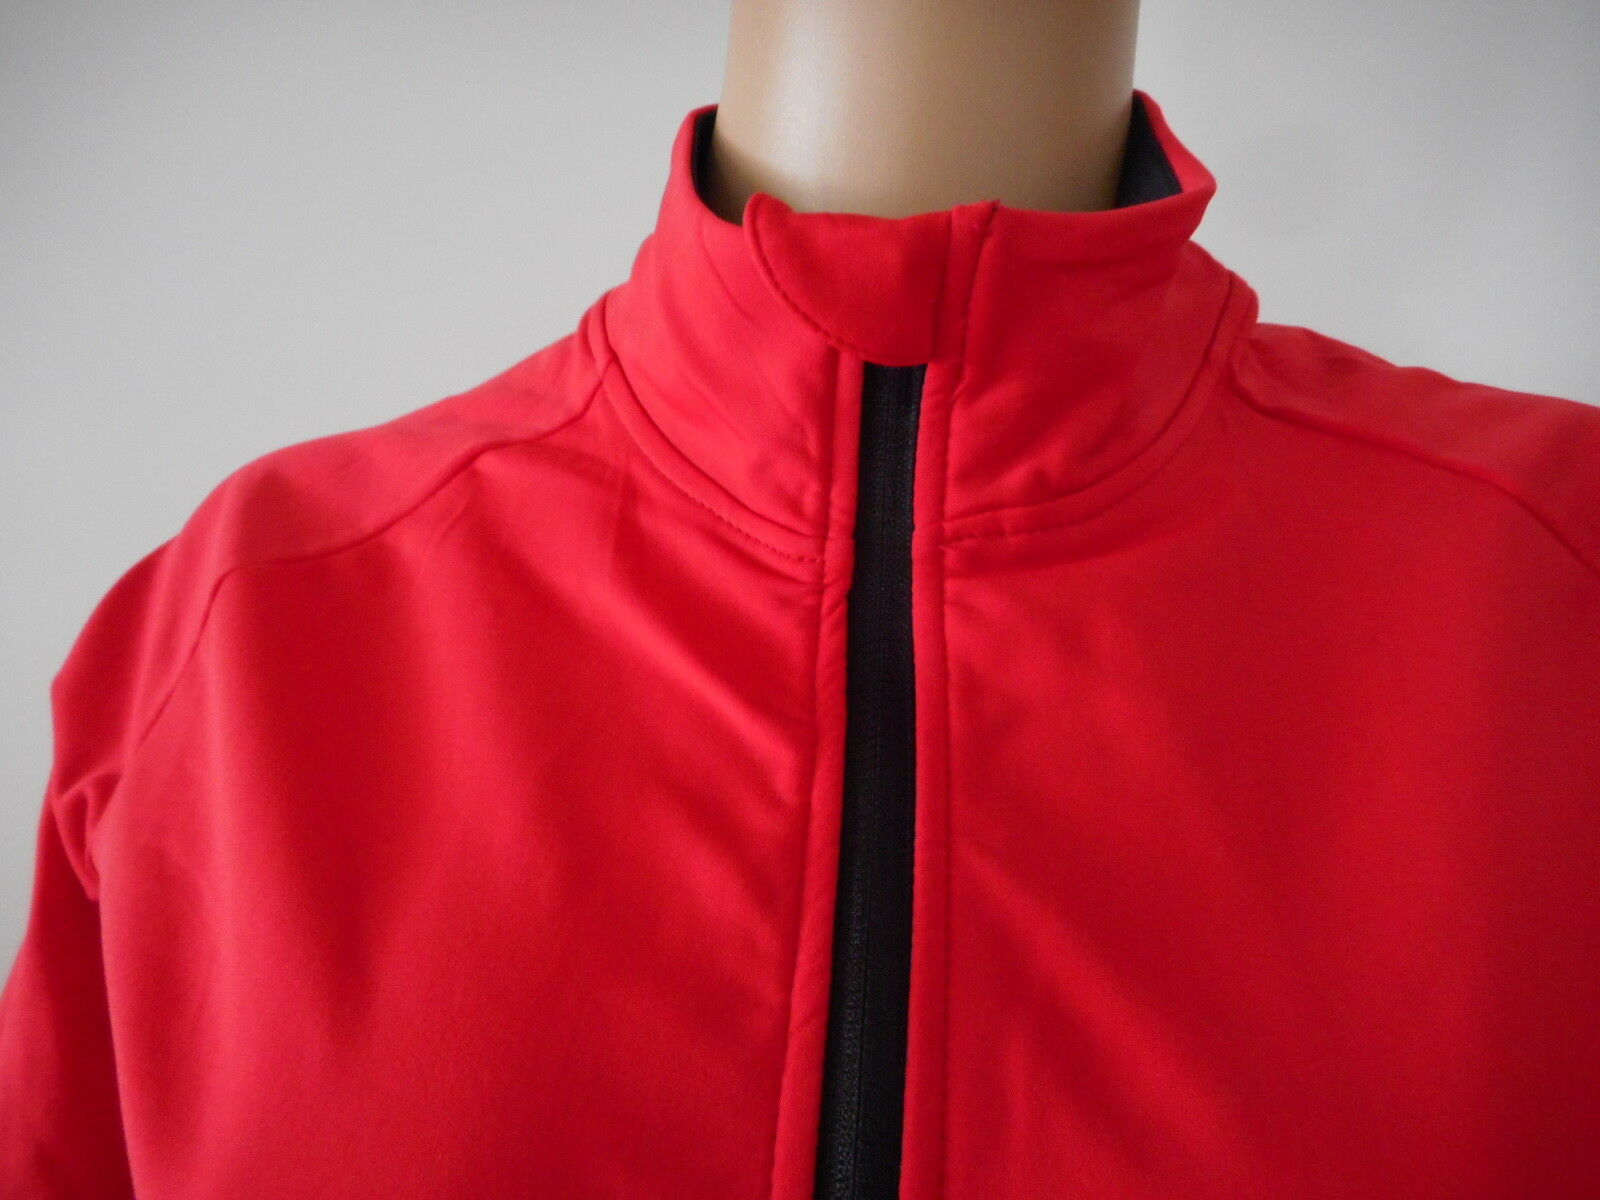 Jaggad Unisex Jersey  (Red, Blue, Black, Lime/Yellow)  #250